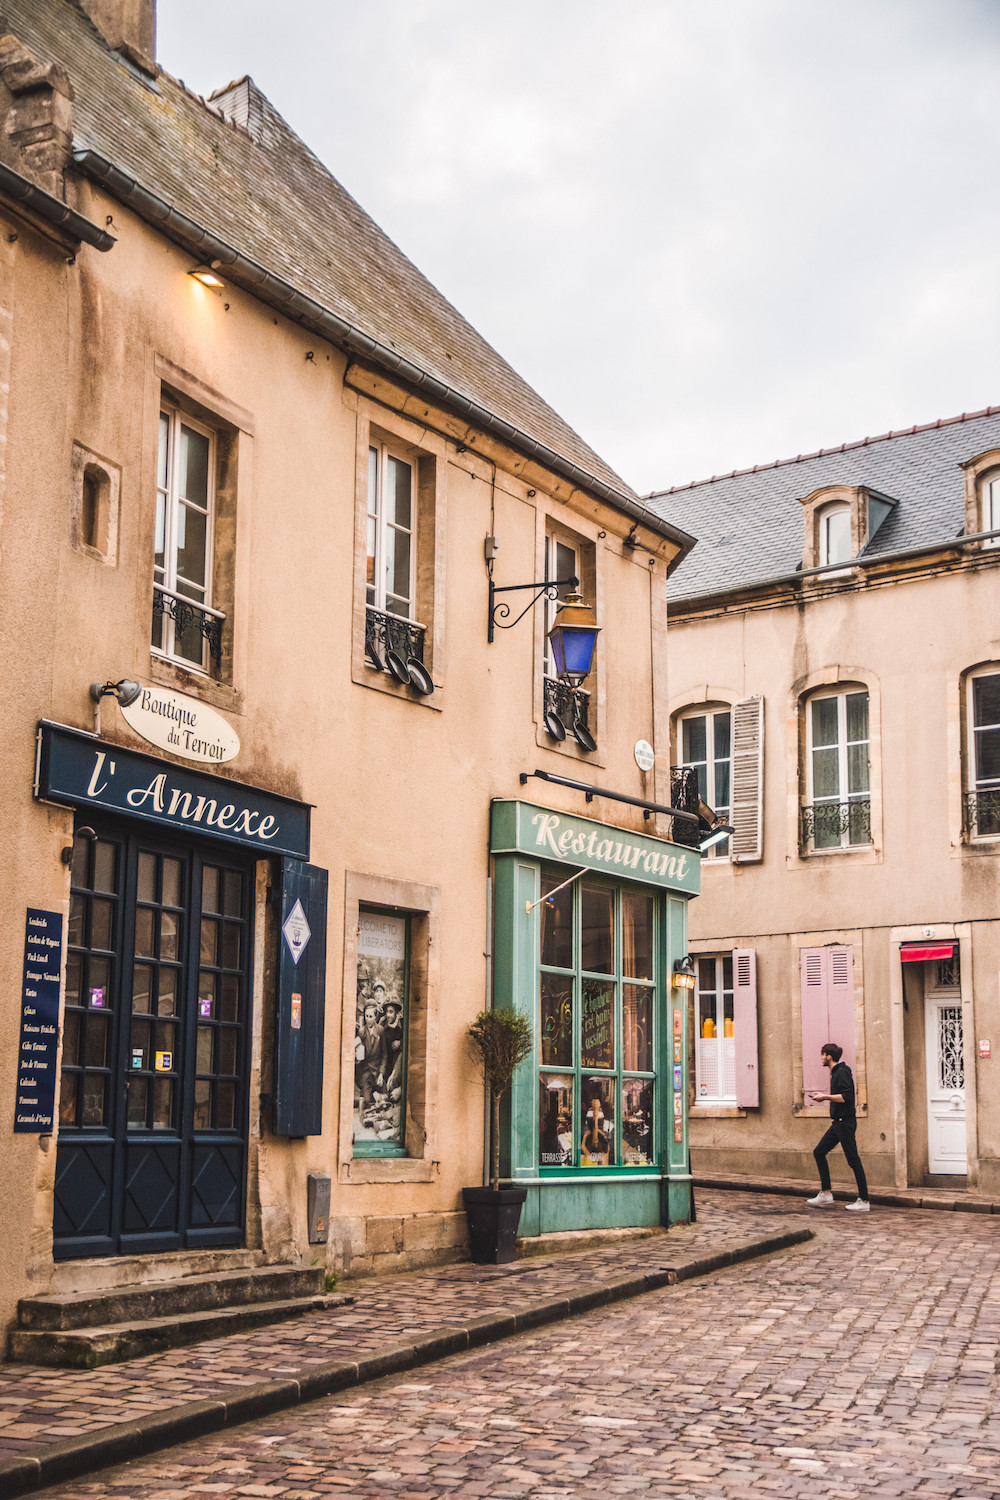 Bayeux straatjes in Normandie